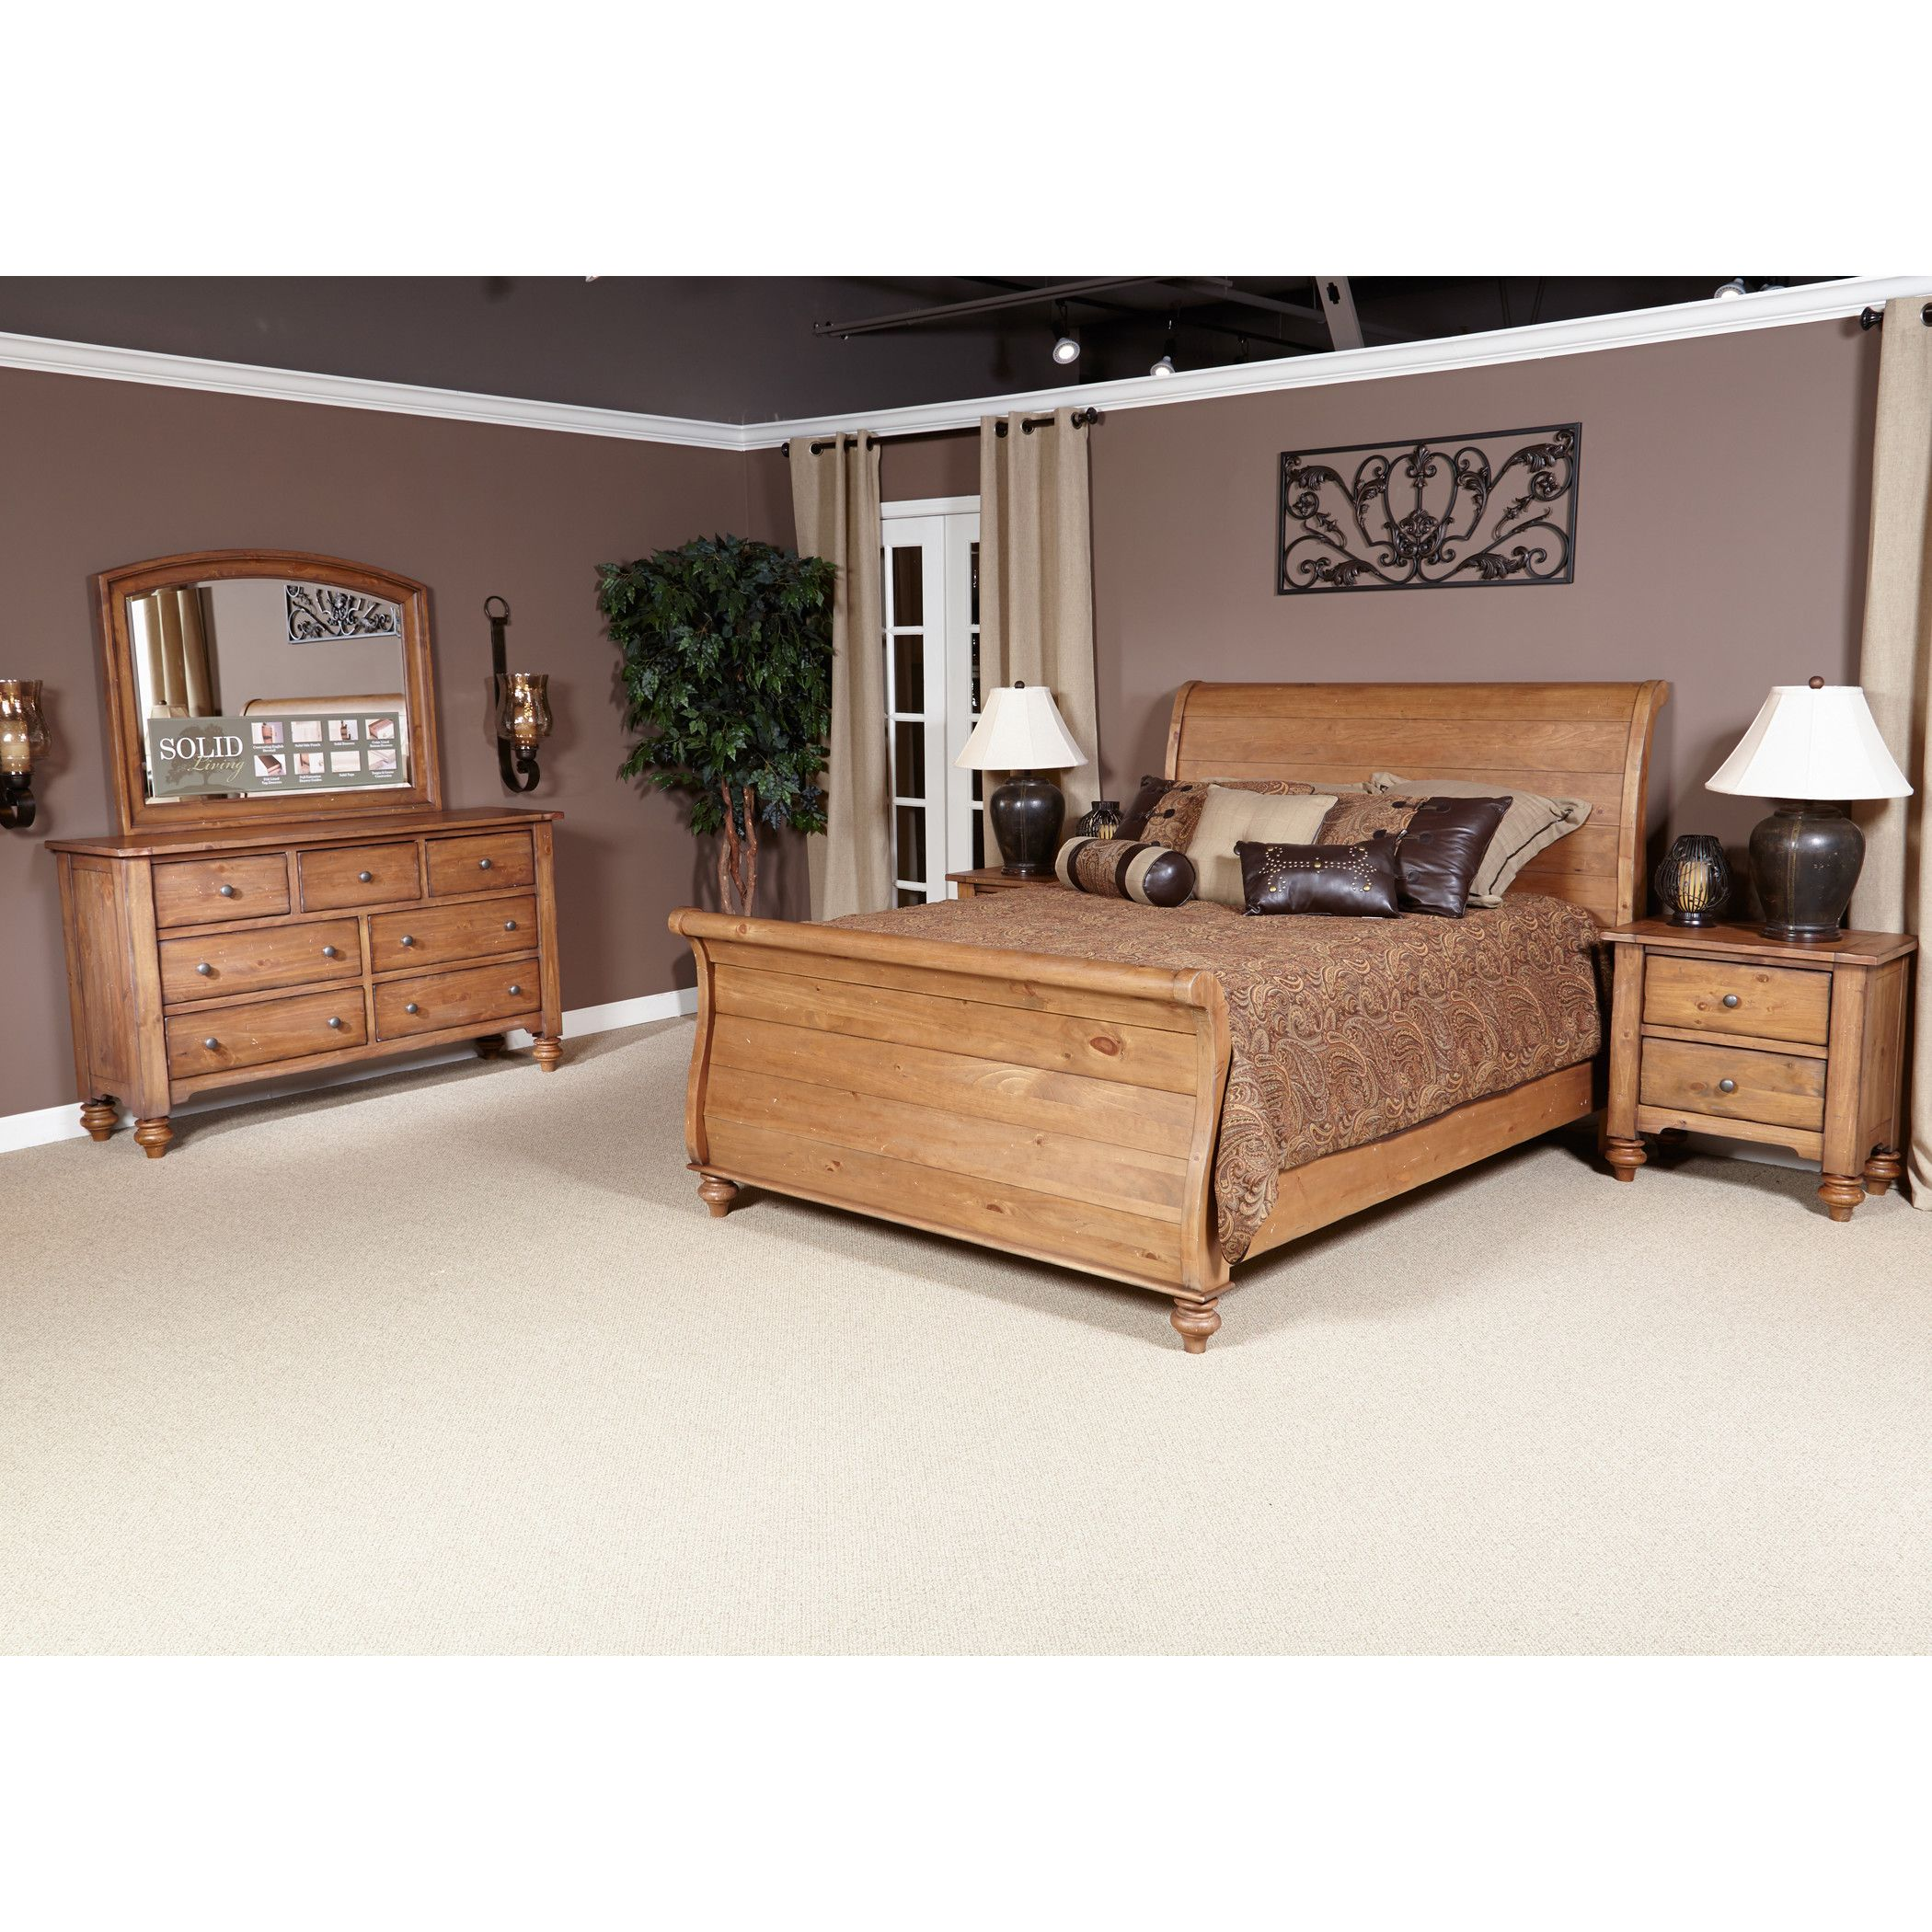 sonoma queen qpbdm br group item products number road bedroom liberty furniture